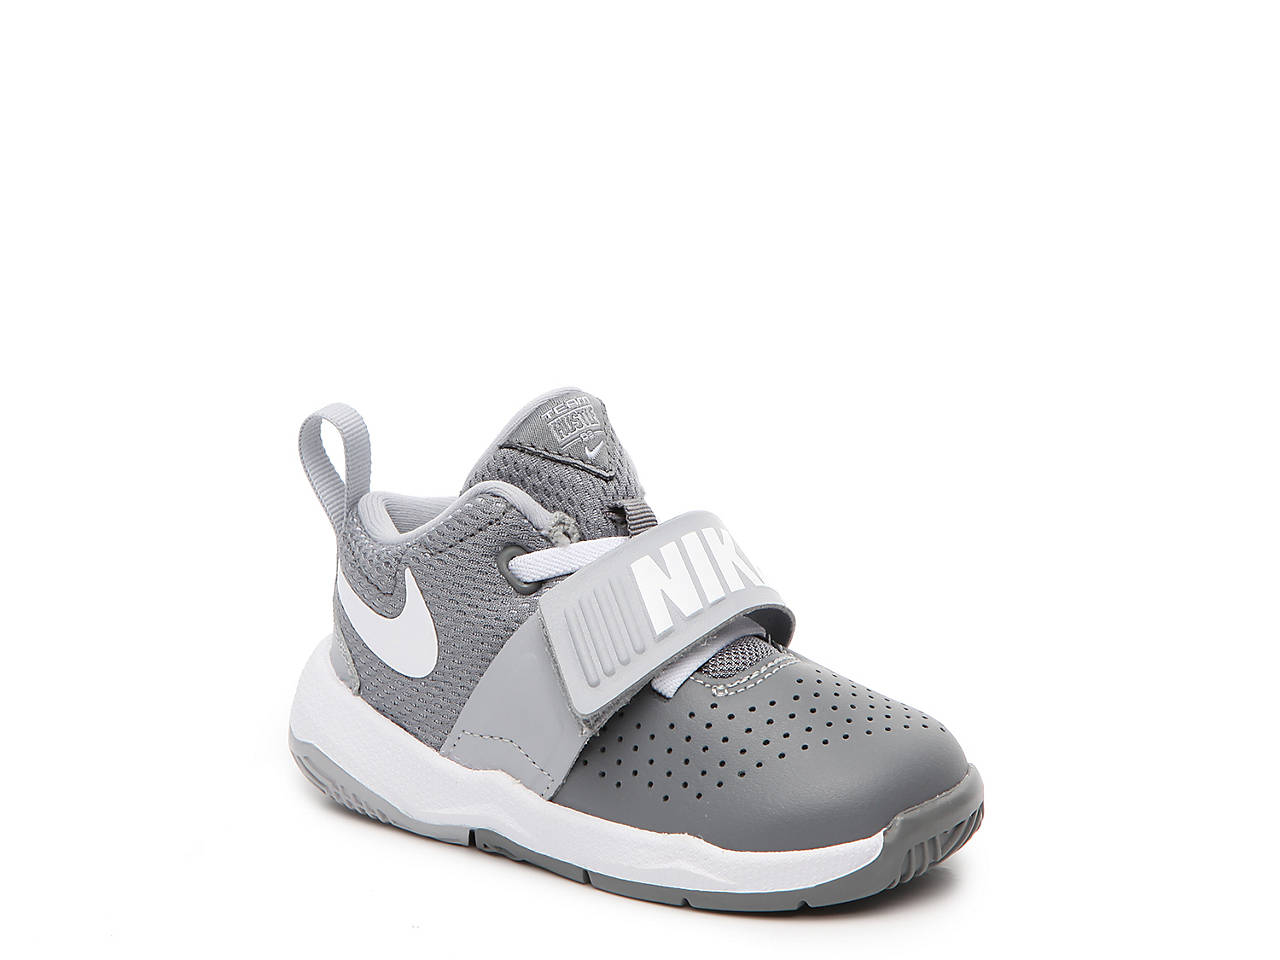 4417611e63 Nike Team Hustle D8 Infant & Toddler Basketball Shoe Kids Shoes | DSW